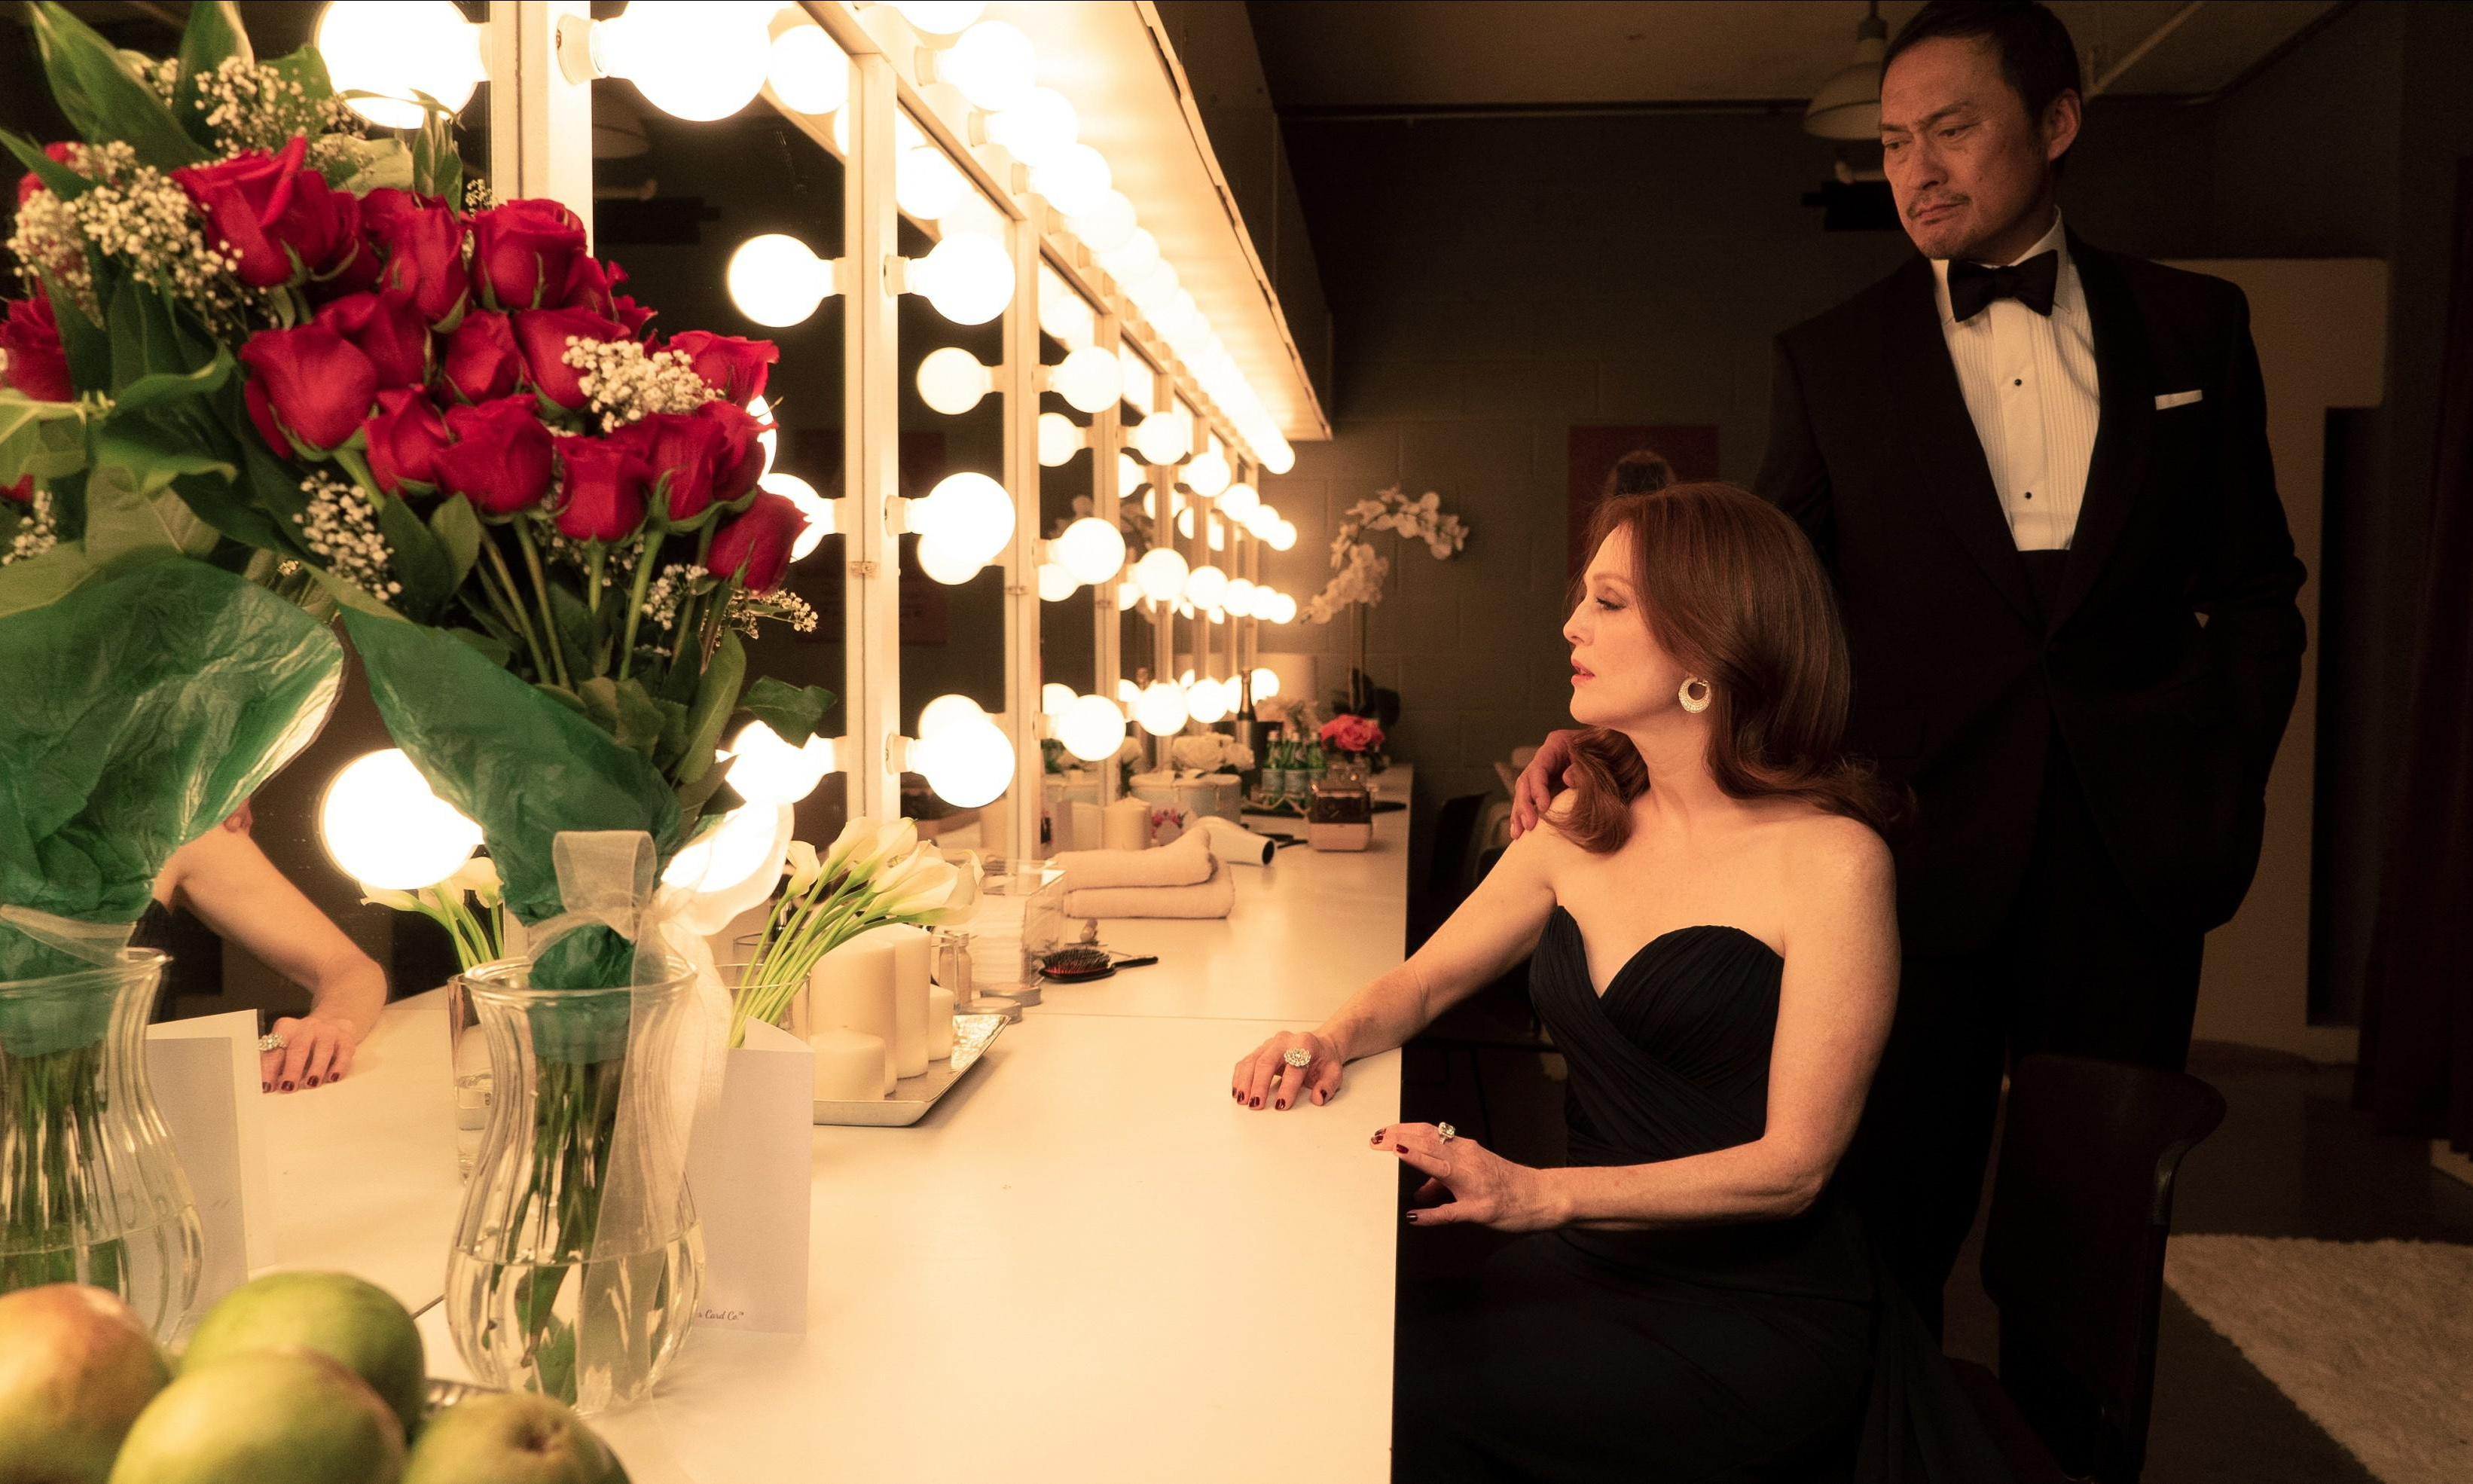 Bel Canto review – Julianne Moore trills as opera star in hostage drama